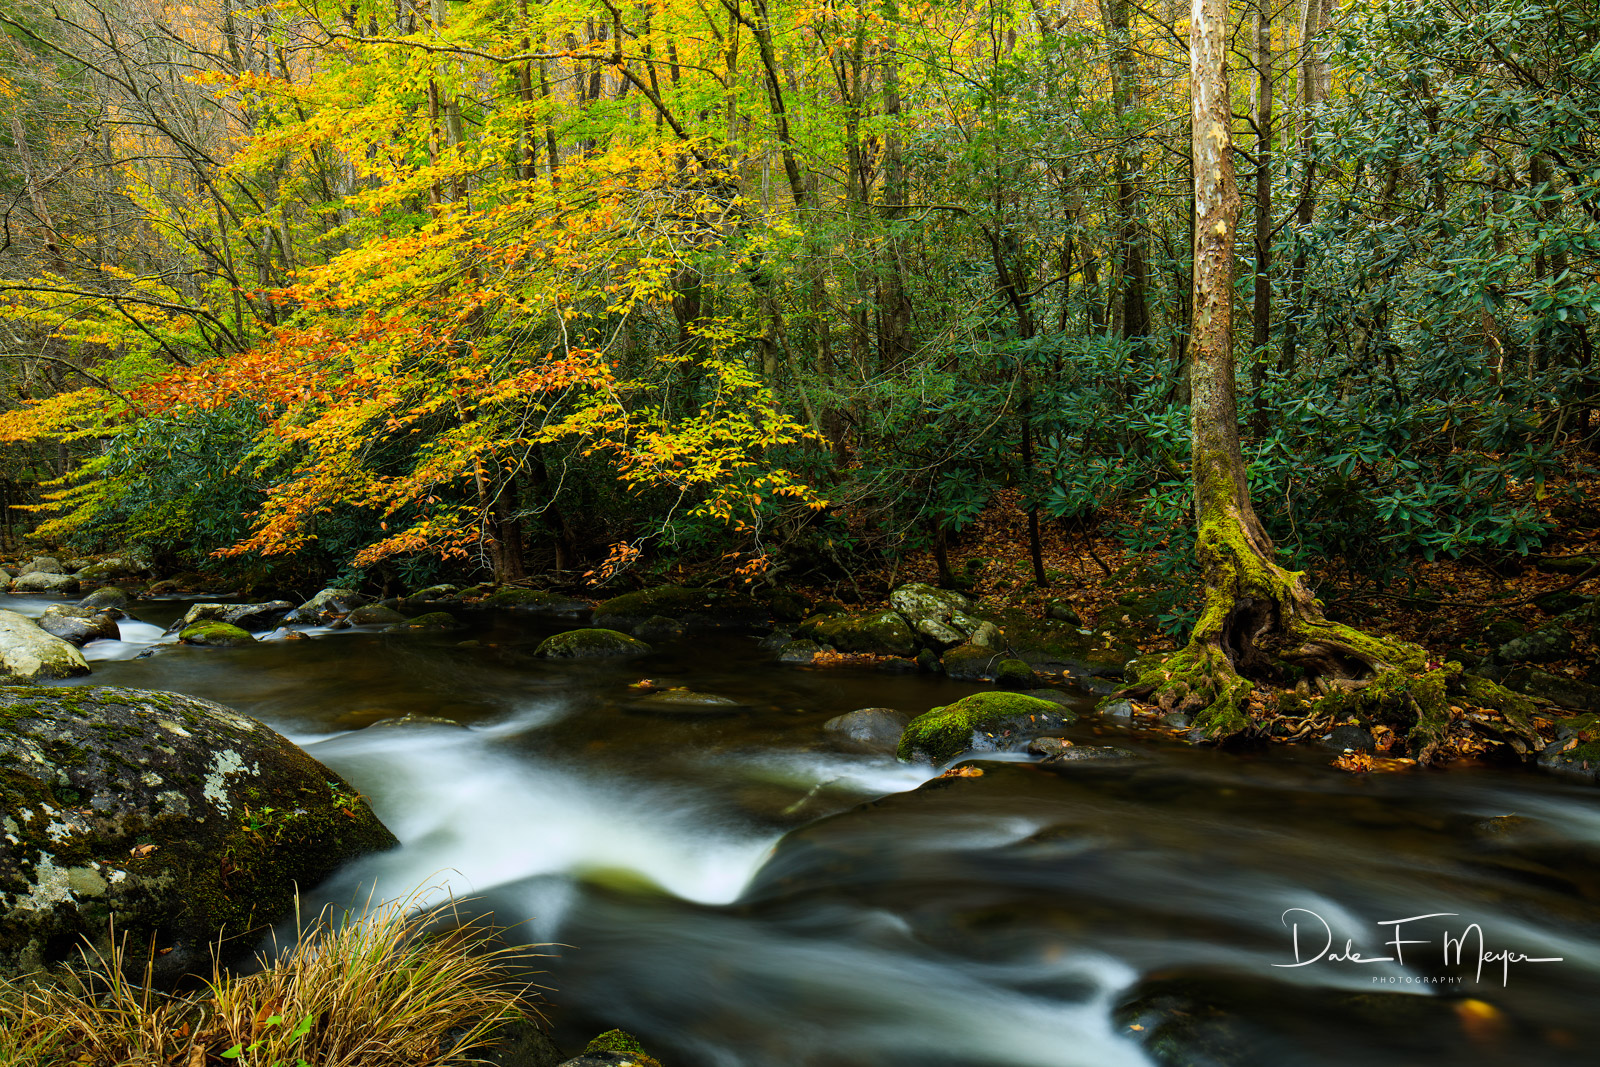 Fall 2015,Great Smokey Mountains,Middle Prong Little River,Tremount,rivers streams and waterfalls gallerie, photo